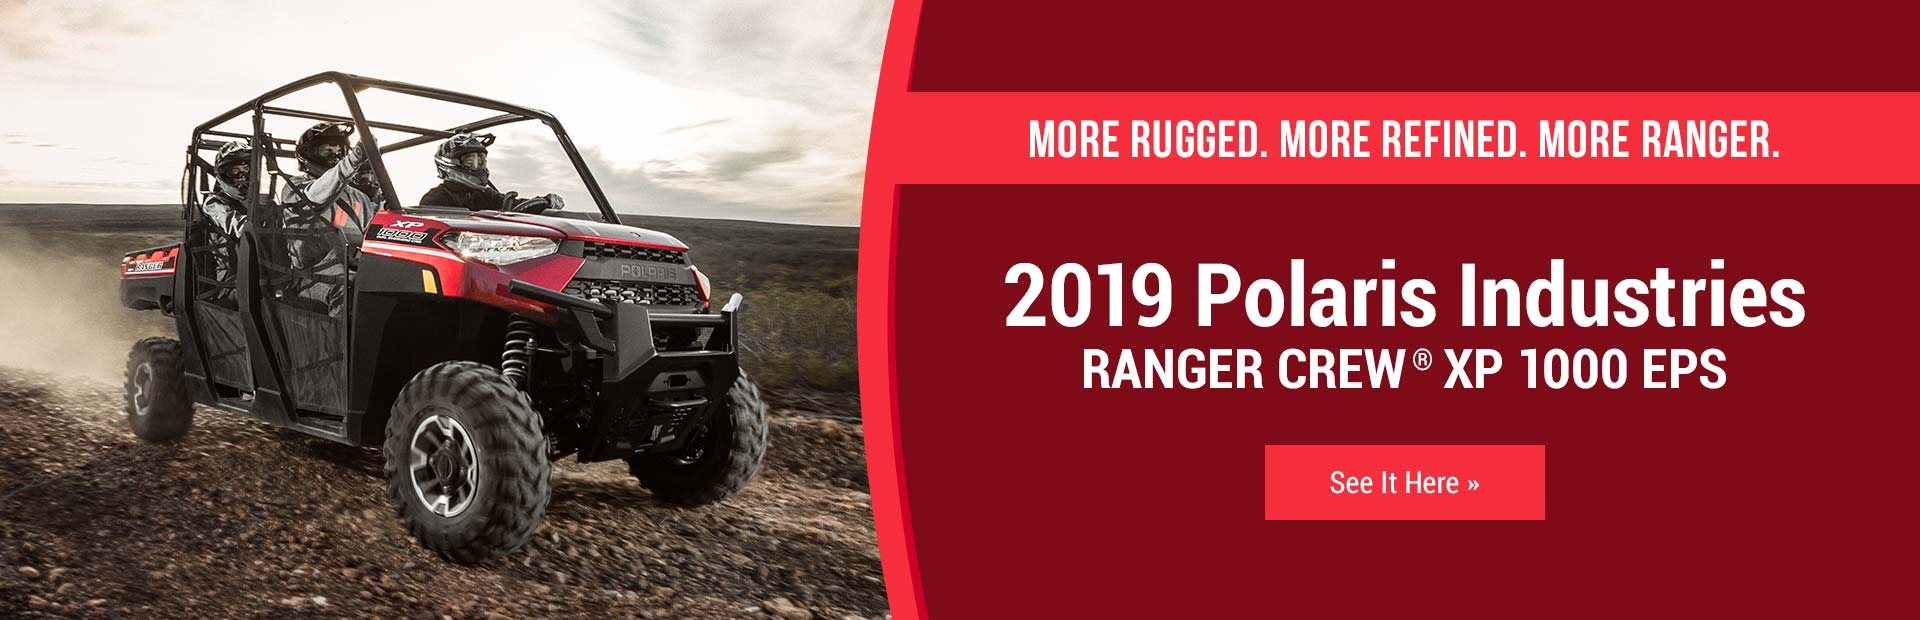 2019 Polaris Industries Ranger Crew®XP 1000 EPS:单击此处查看模型。